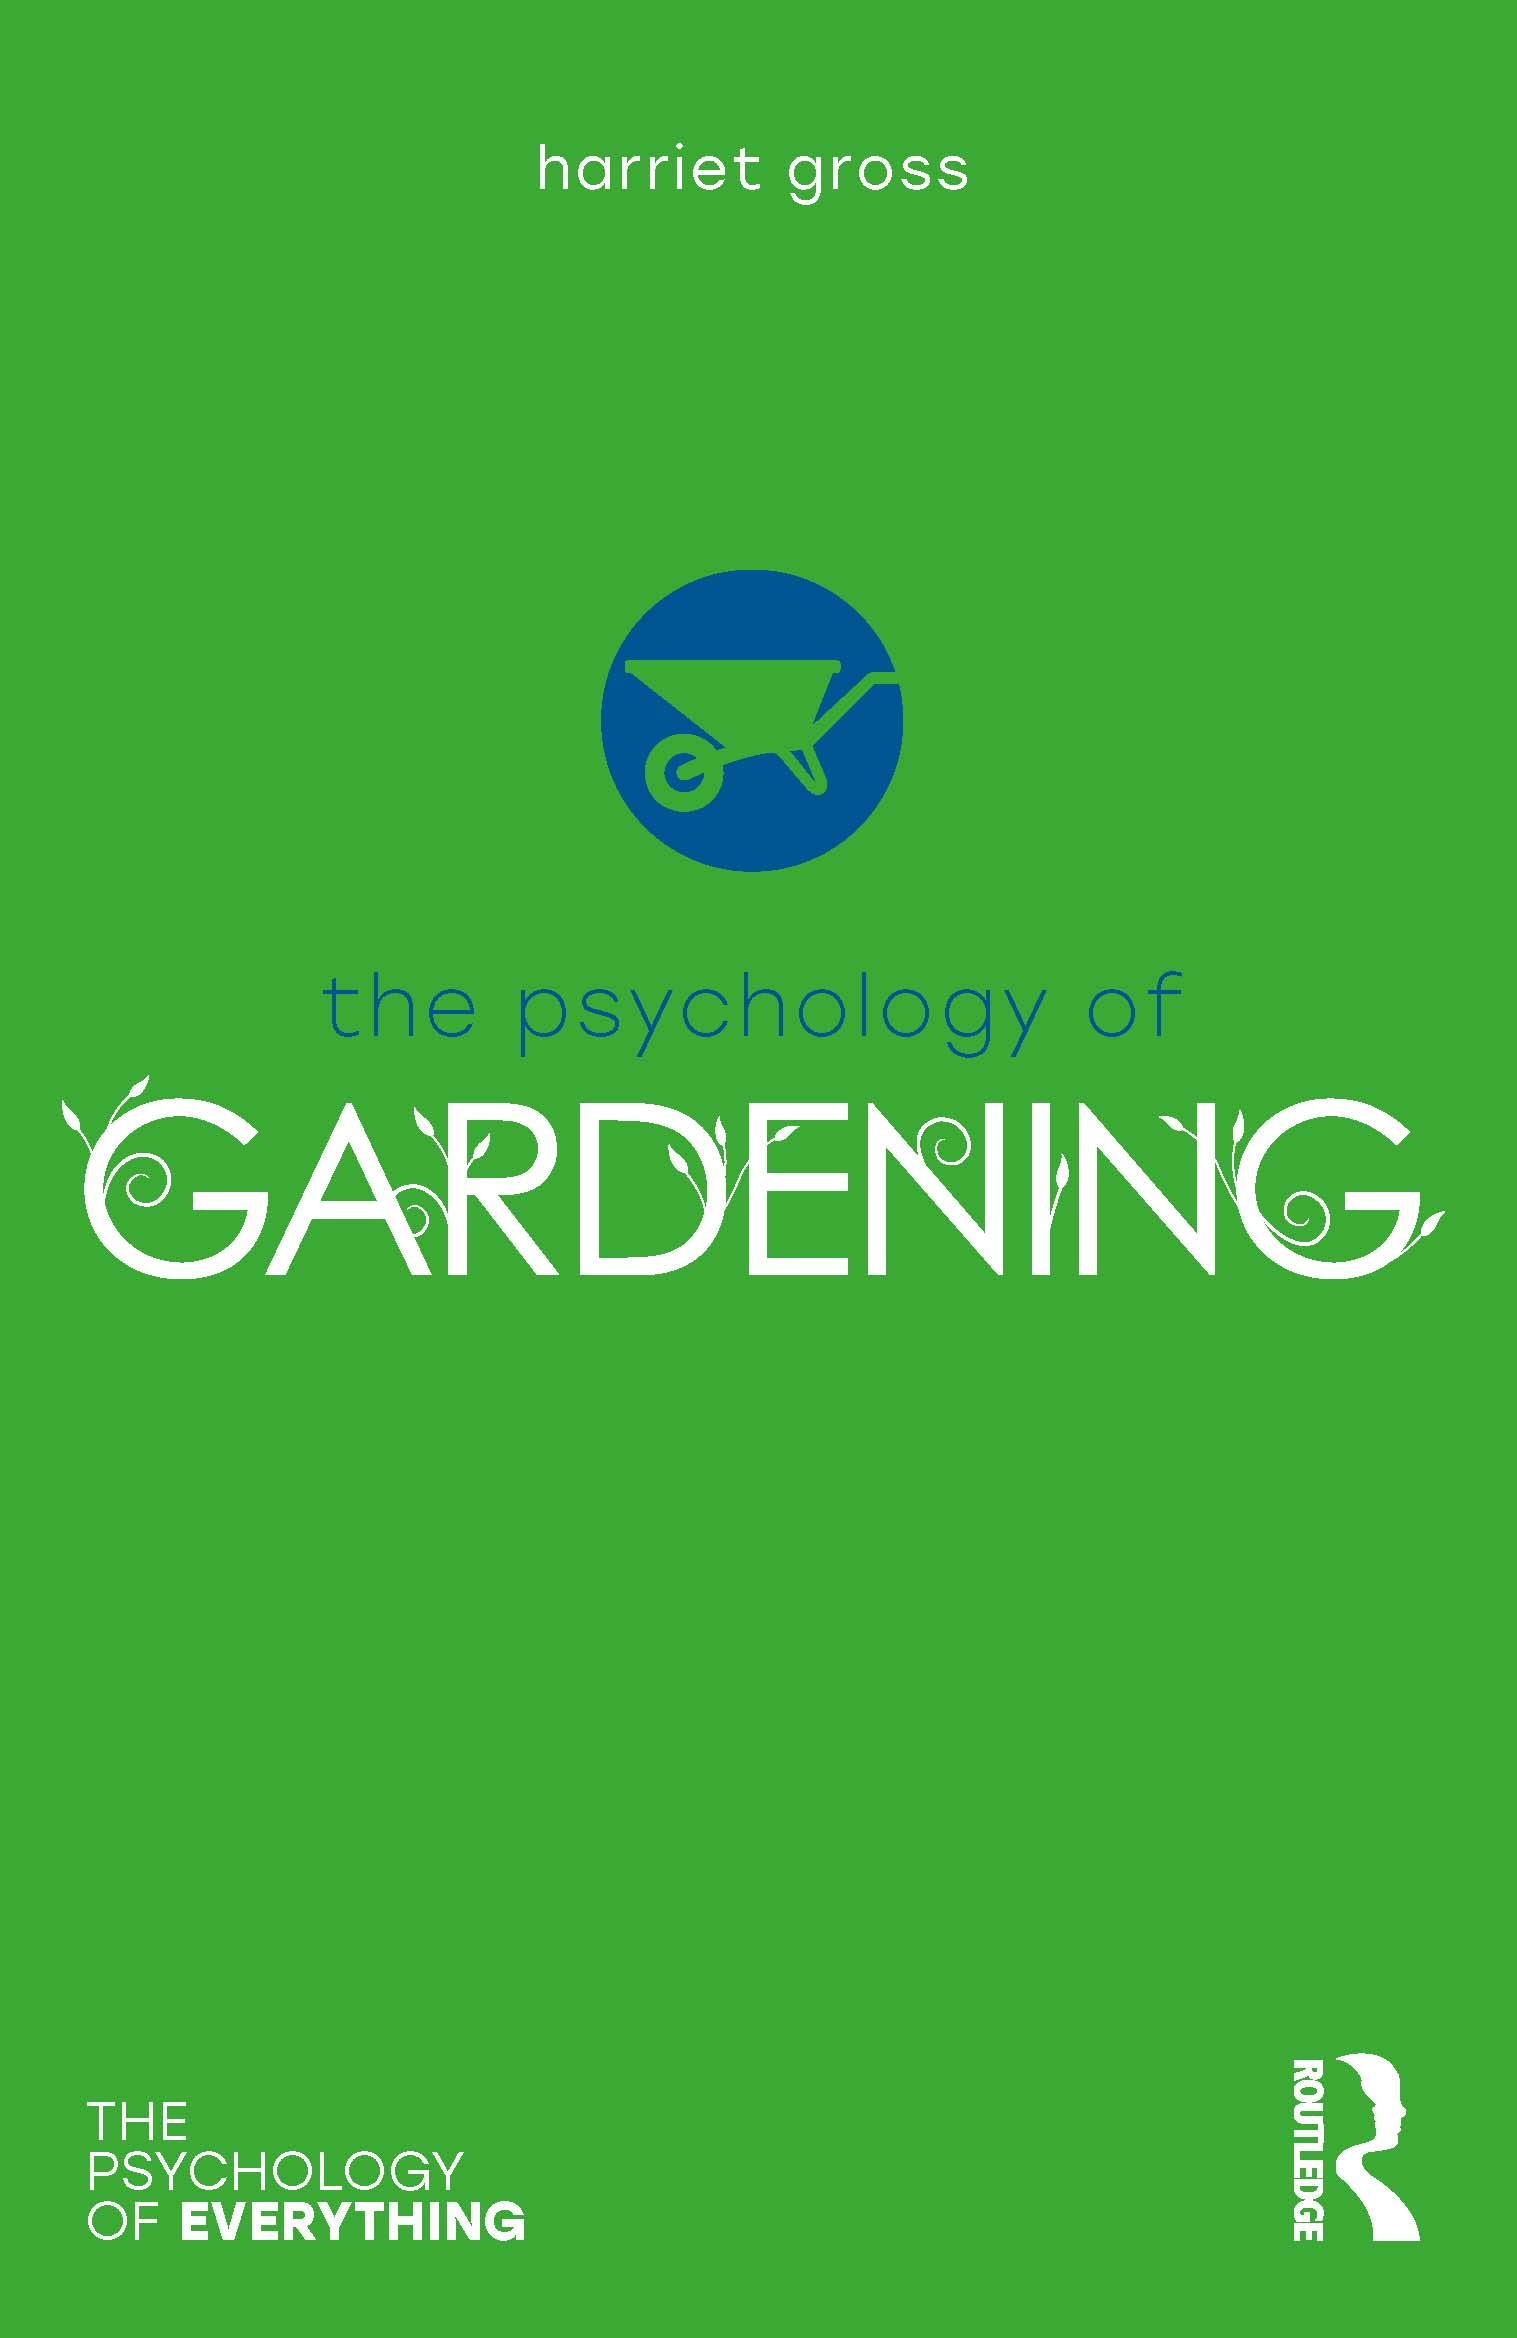 The Psychology of Gardening book cover